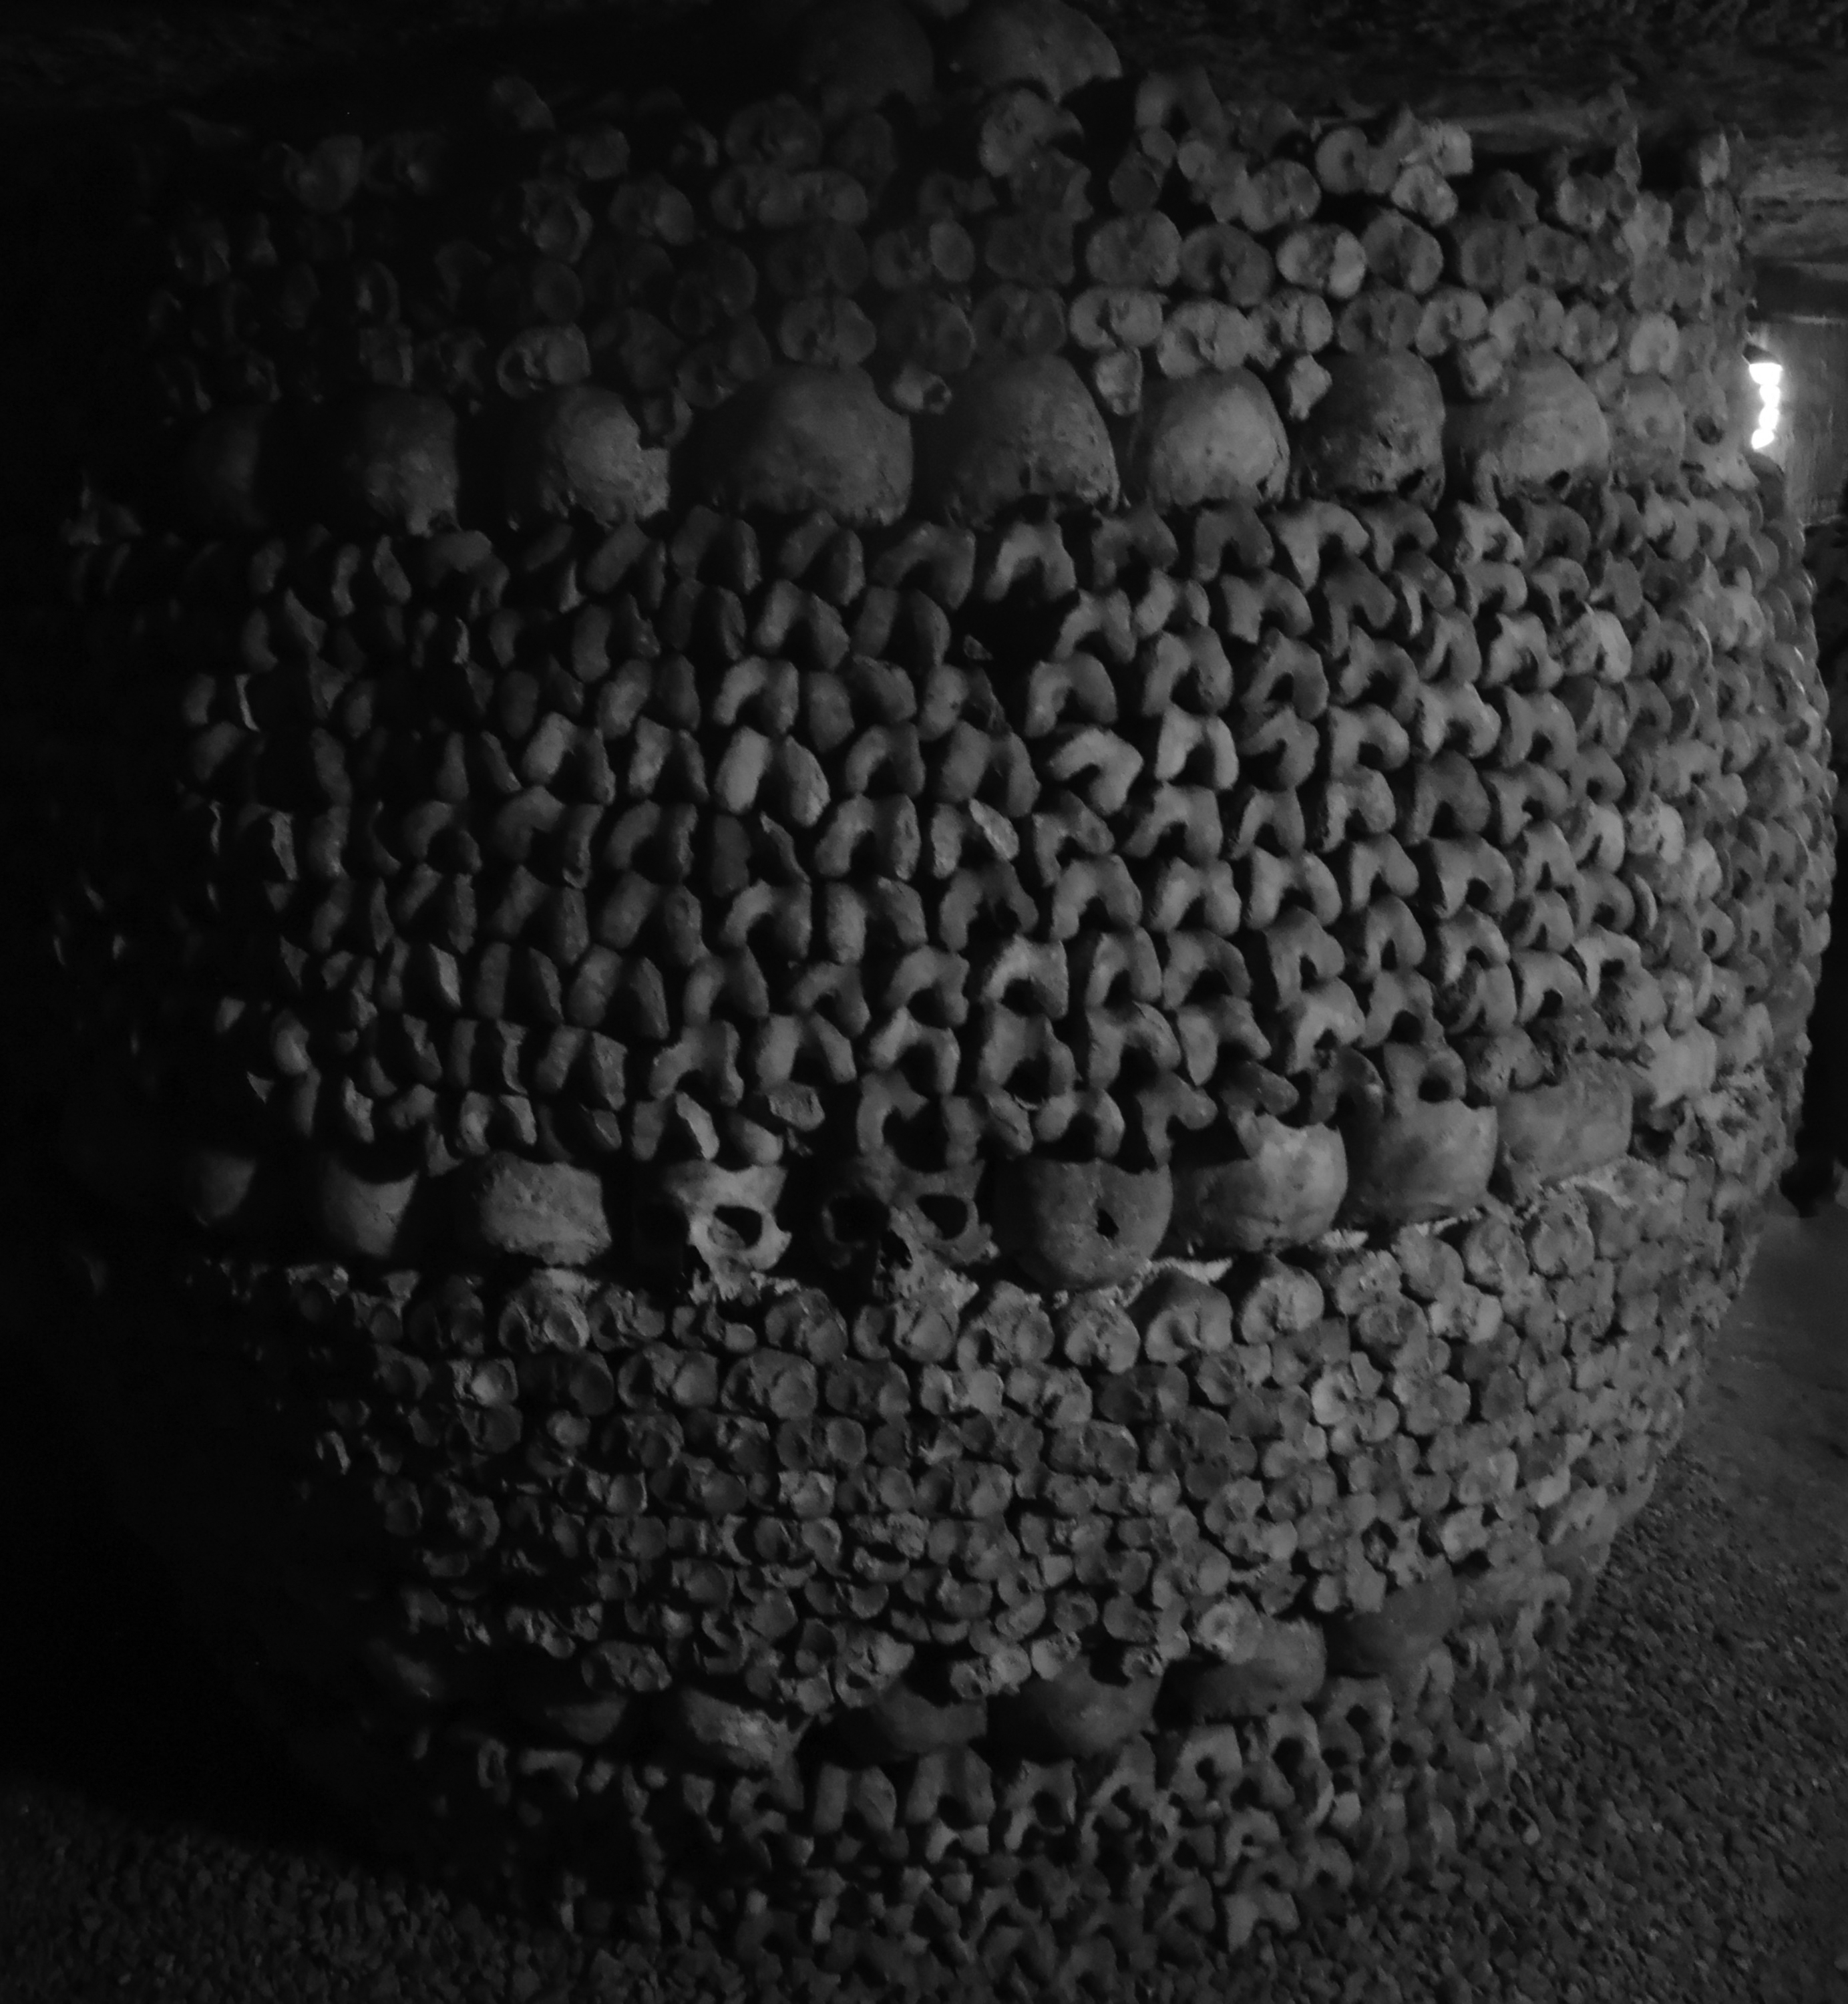 The Barrel, one of the Catacombs most iconic displays